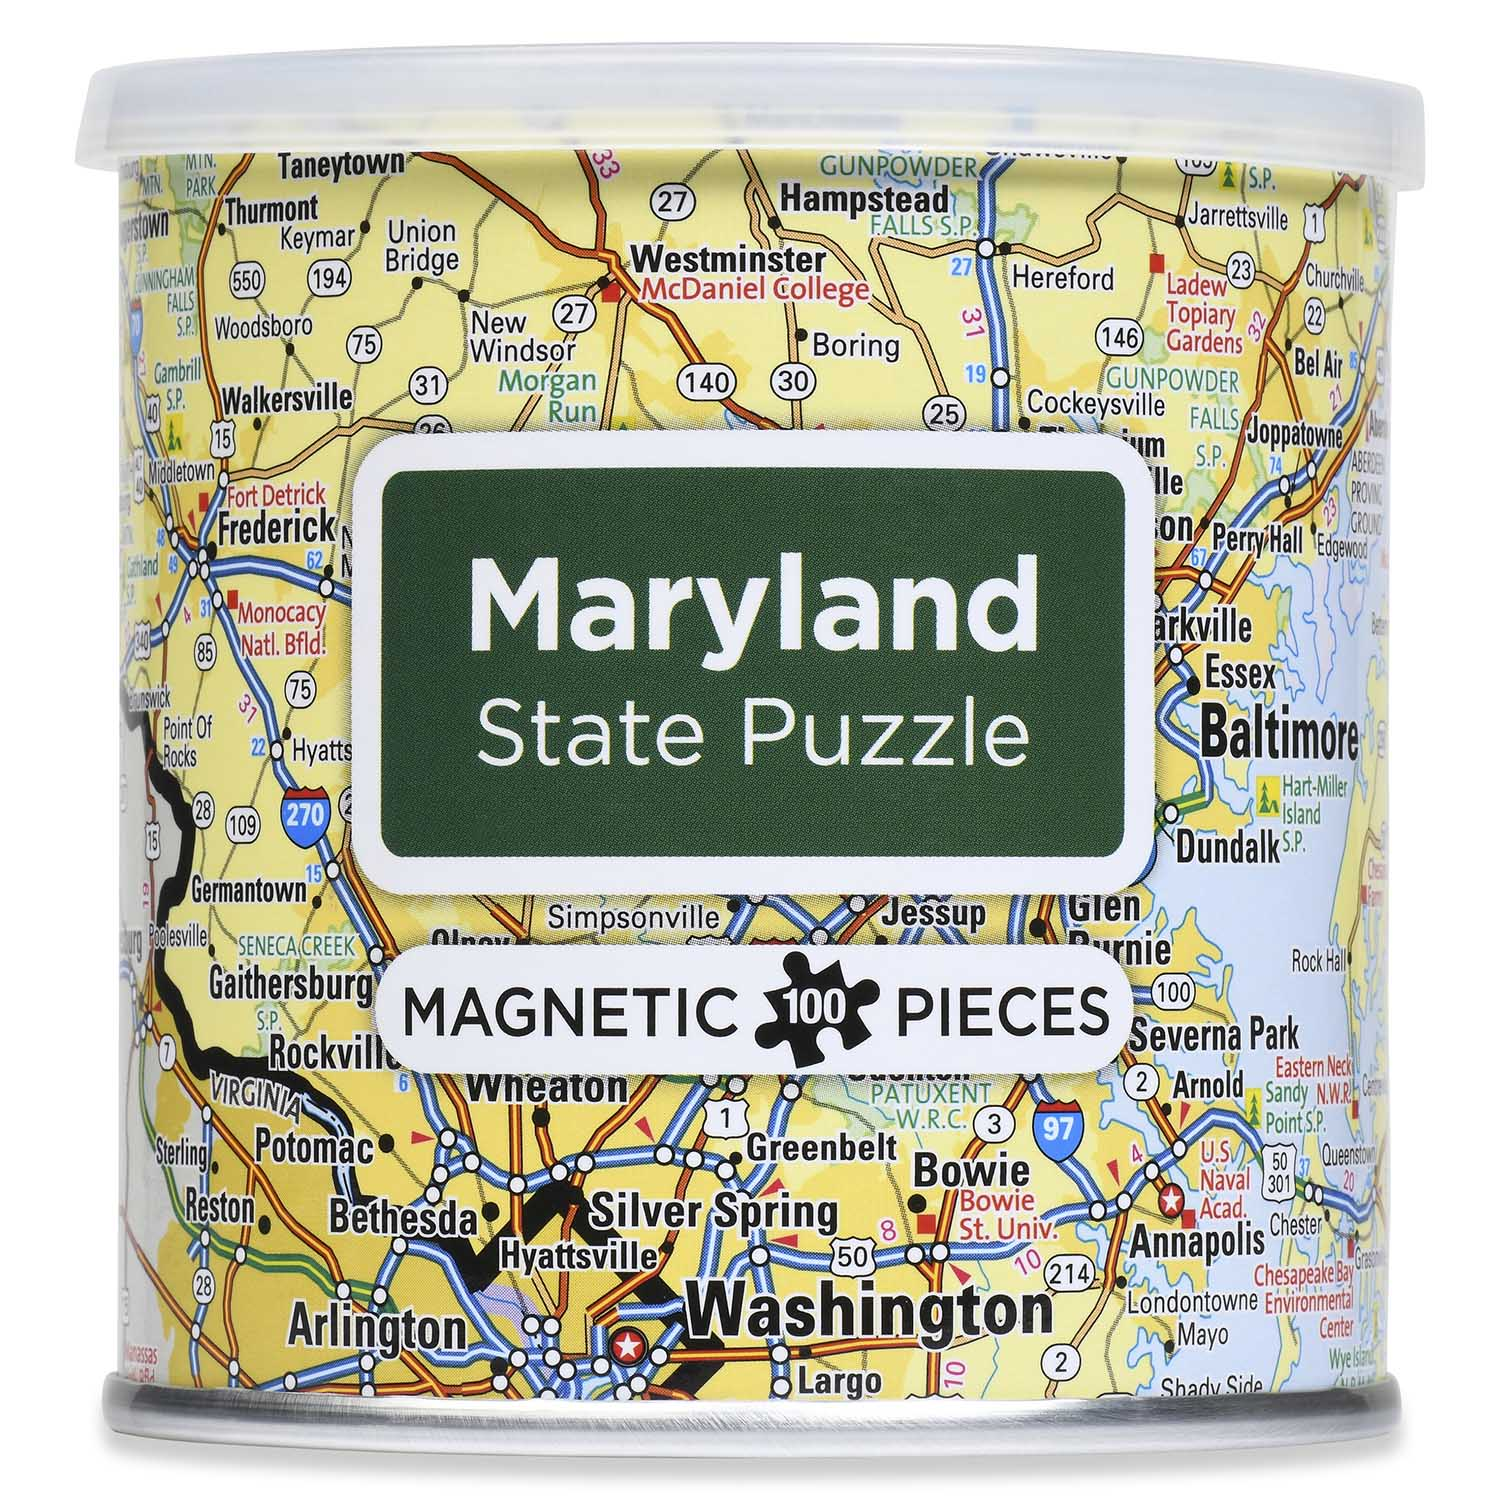 City Magnetic Puzzle Maryland Cities Jigsaw Puzzle